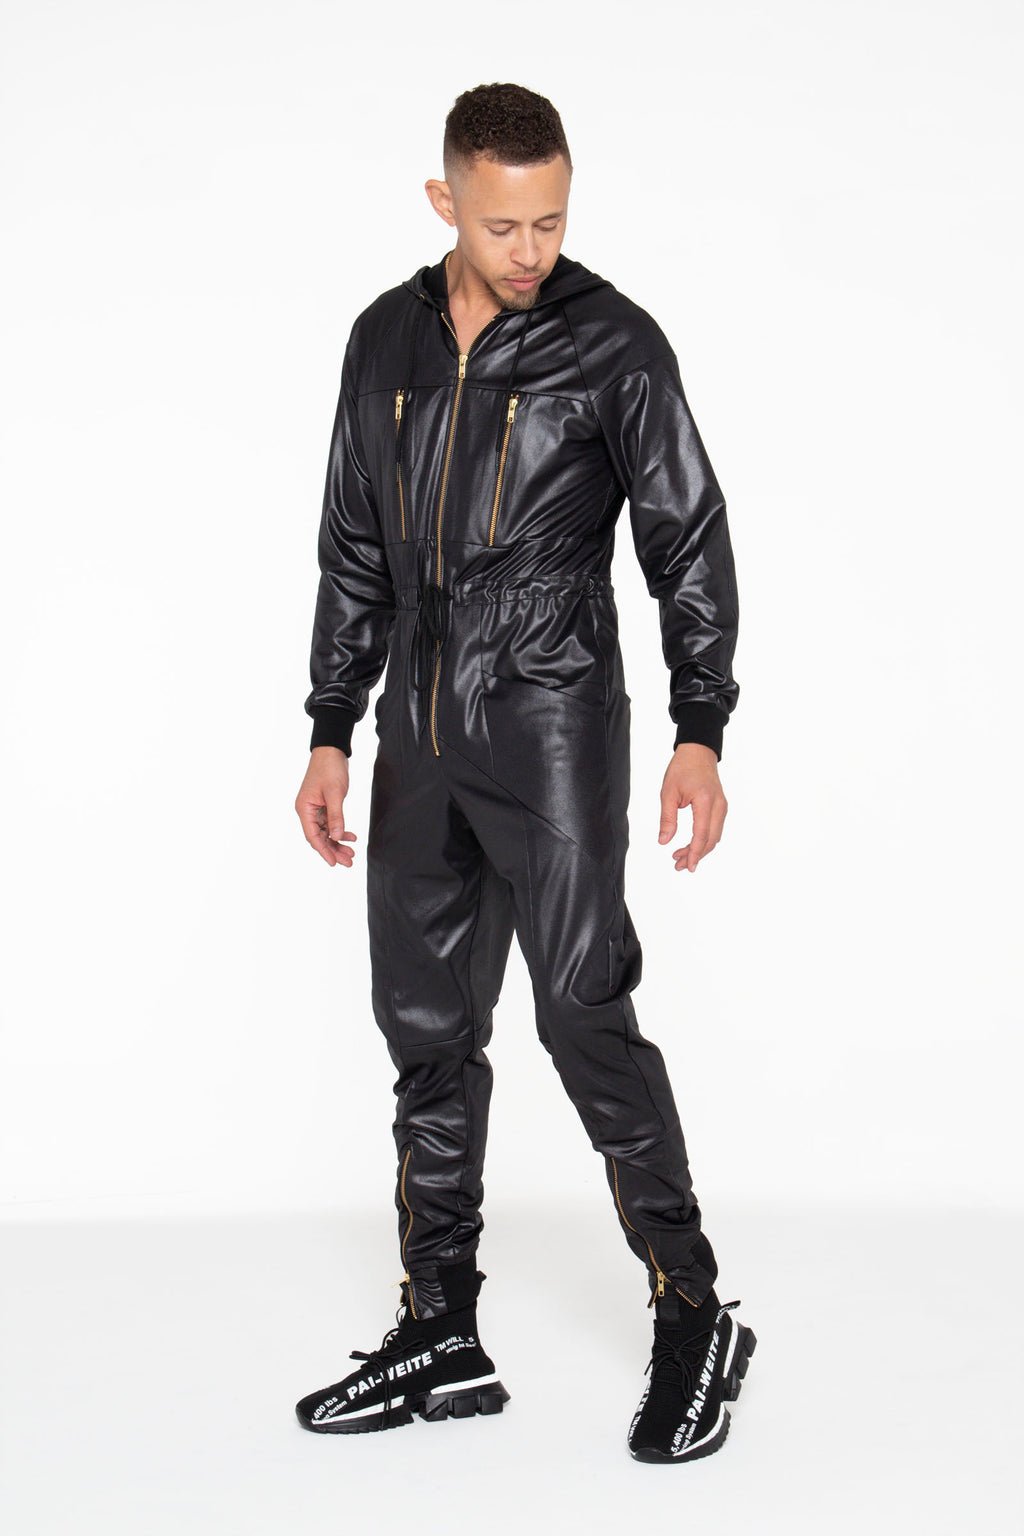 Black Illusion Leather Unisex Jumpsuit - pacorogiene